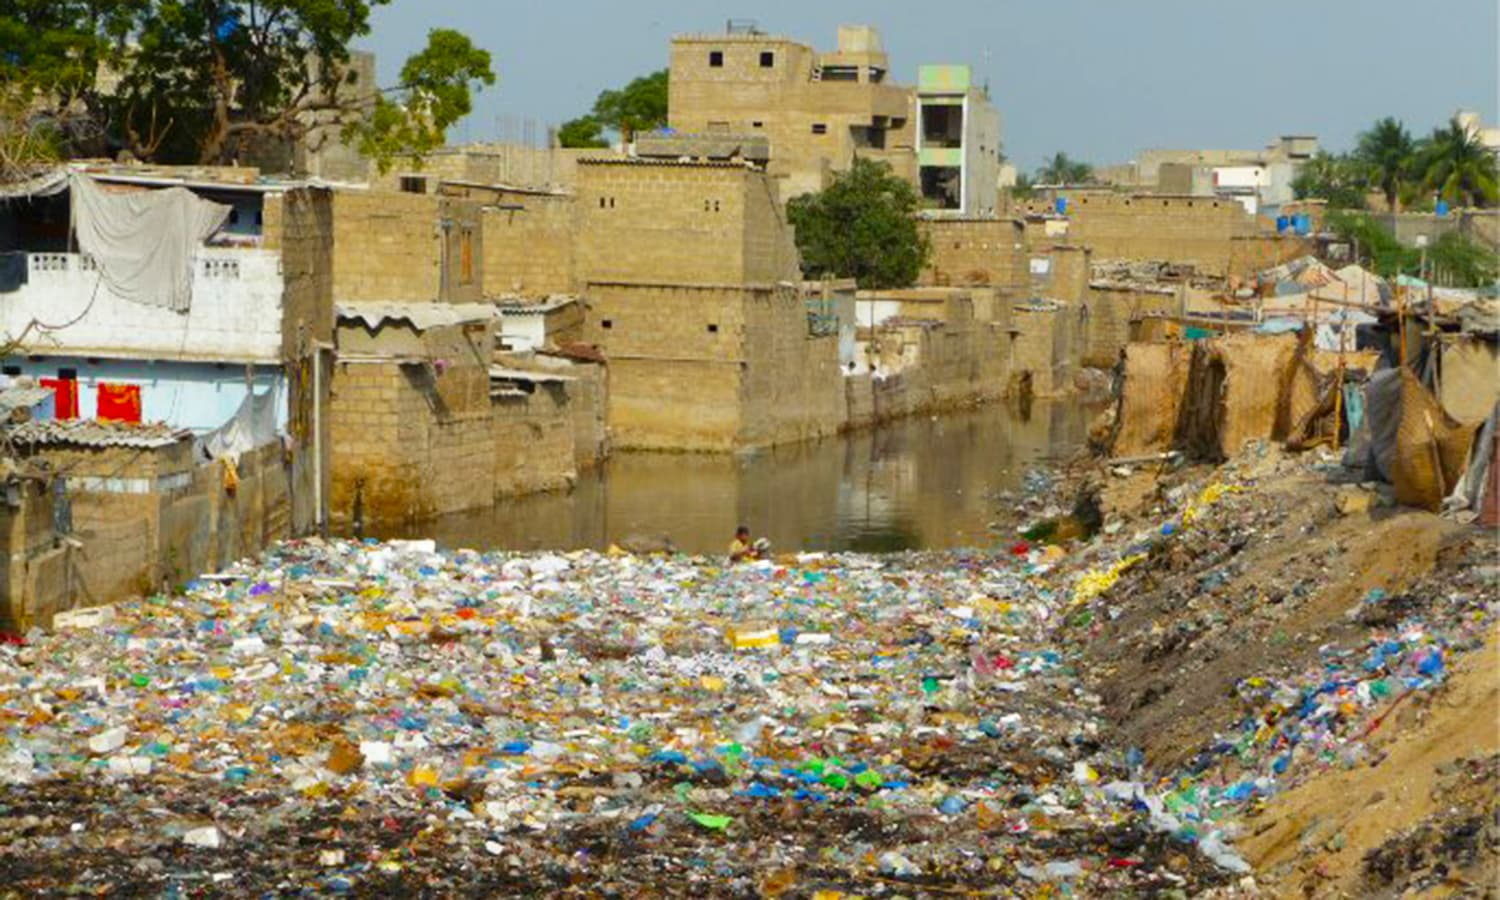 1990s: The sanitation mechanism and system completely broke down in Karachi in the 1990s. On most occasions garbage dumps continued to grow as the city went to war with itself on ethnic grounds. (Photo: Yar-e-Diyar)